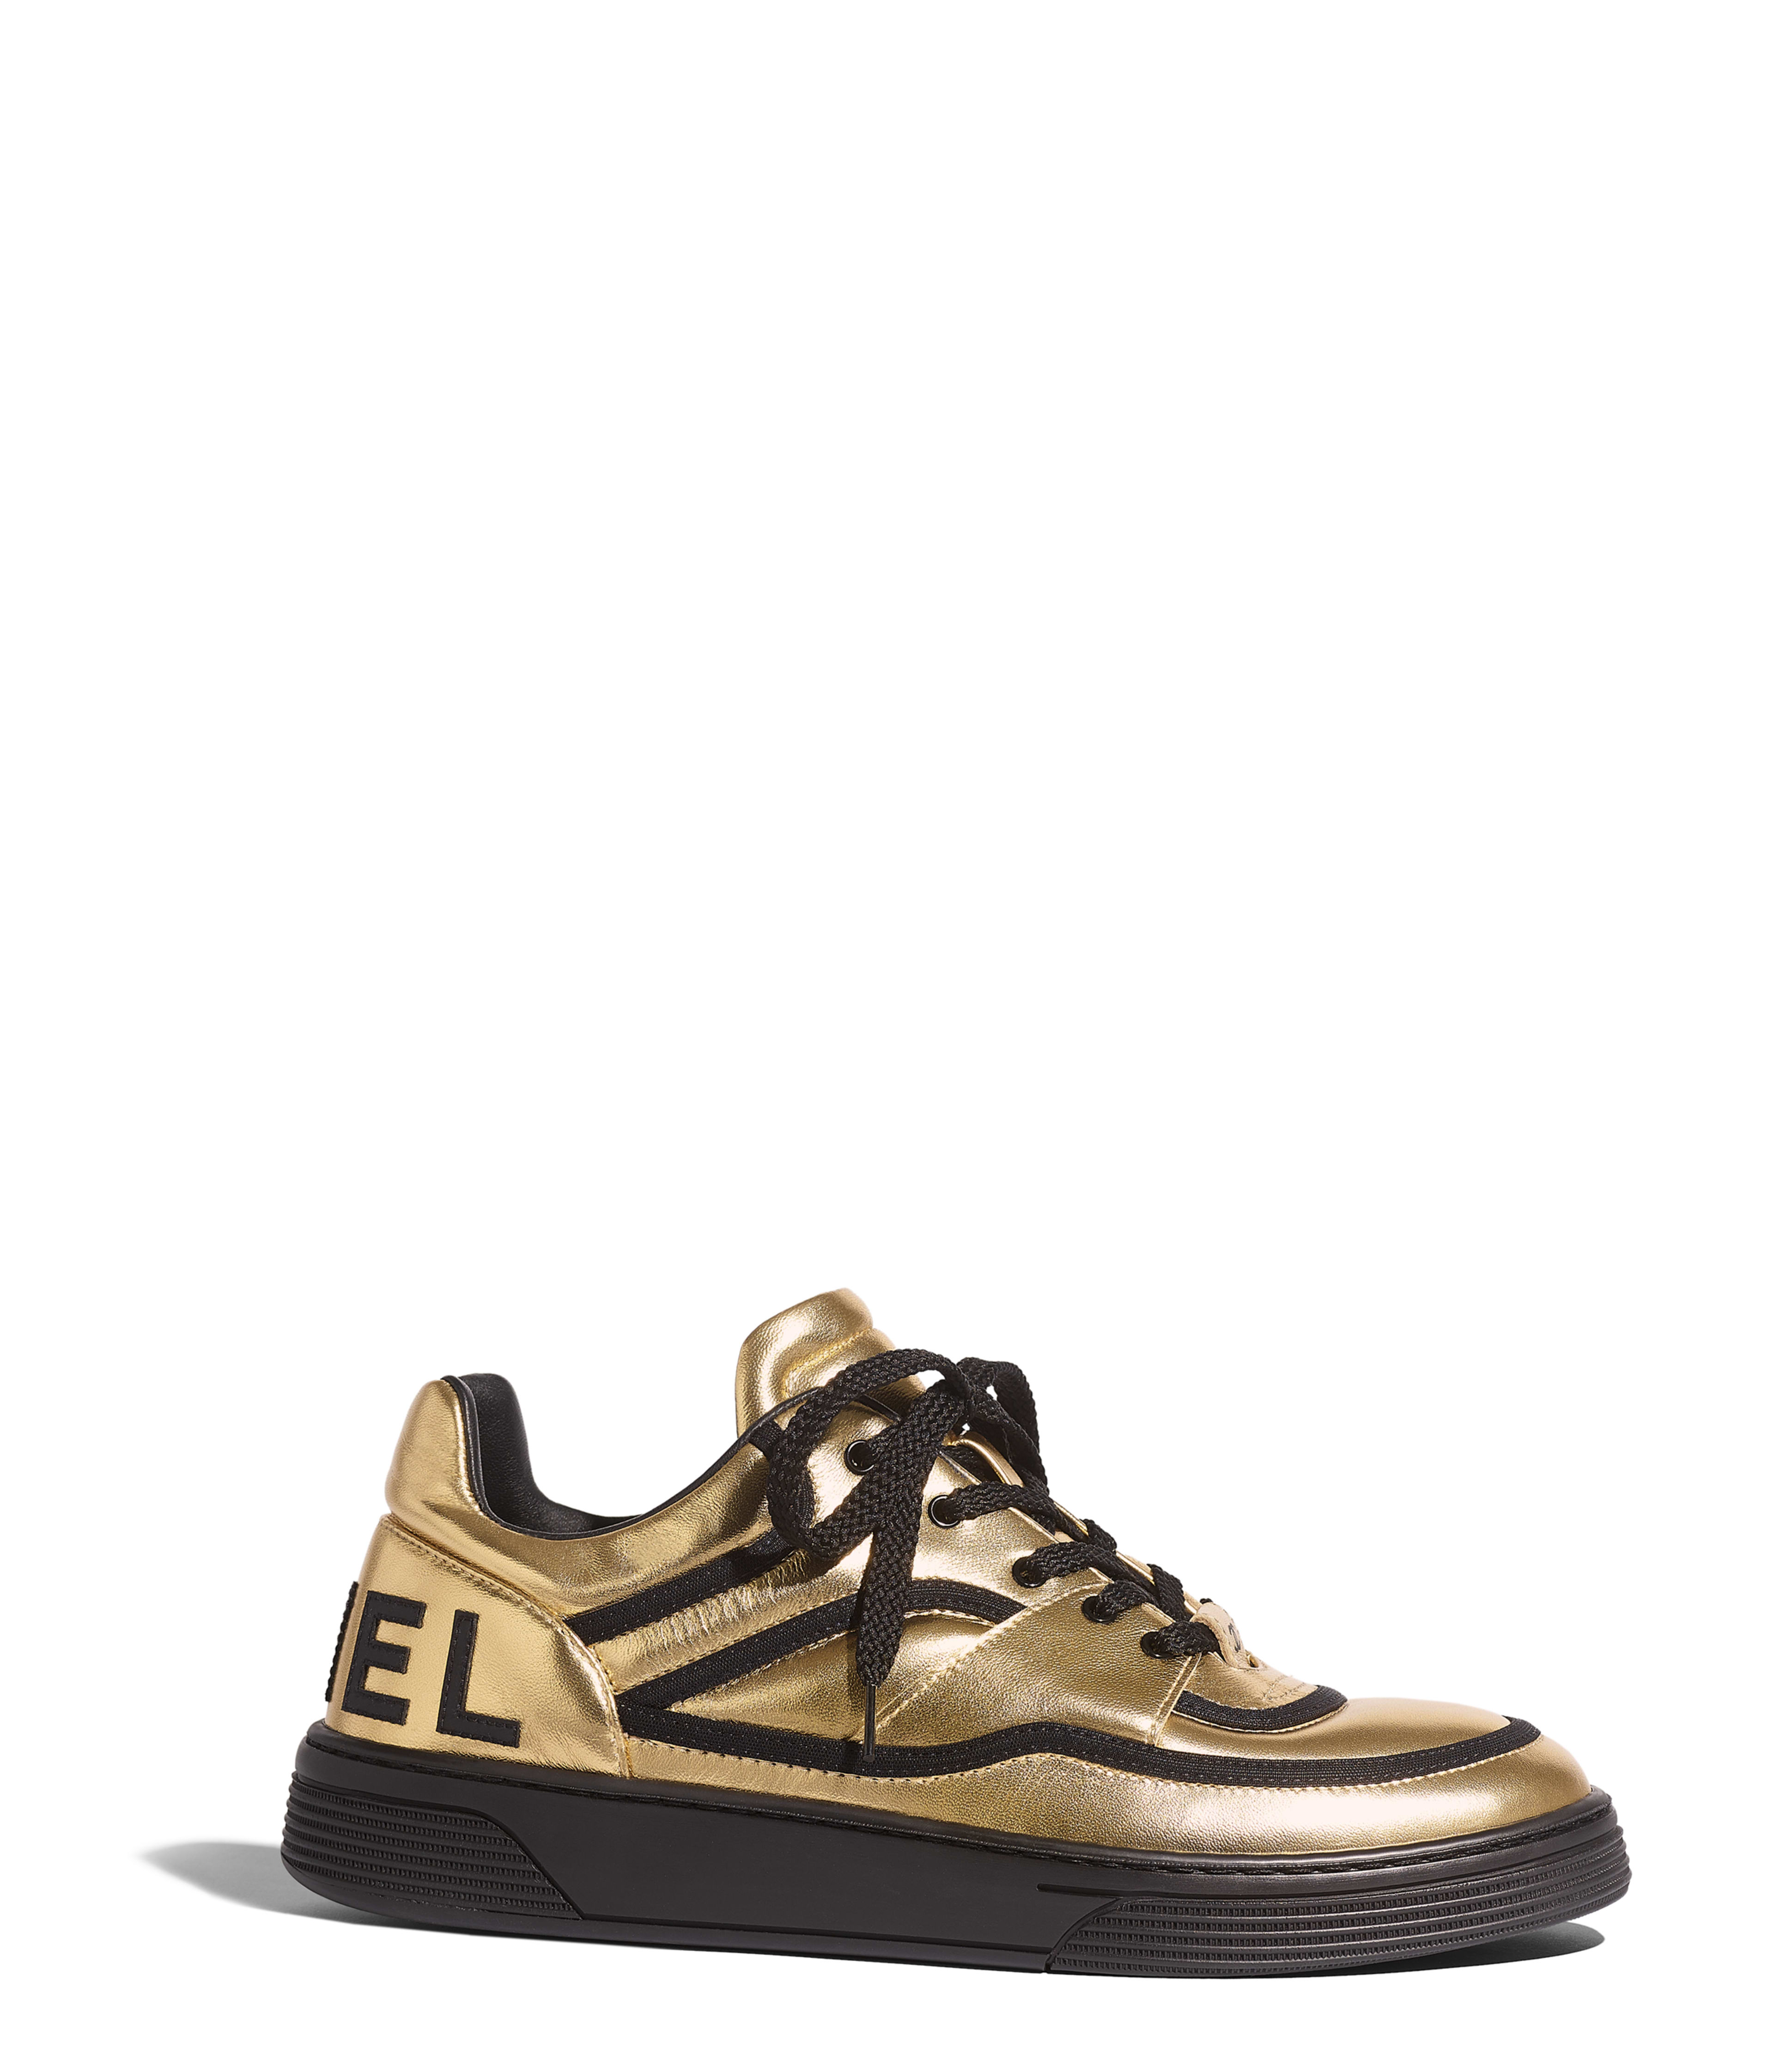 08ffcd9a2 Sneakers Satin Finish Metallic Lambskin, Gold & Black Ref. G35063X53041K1675